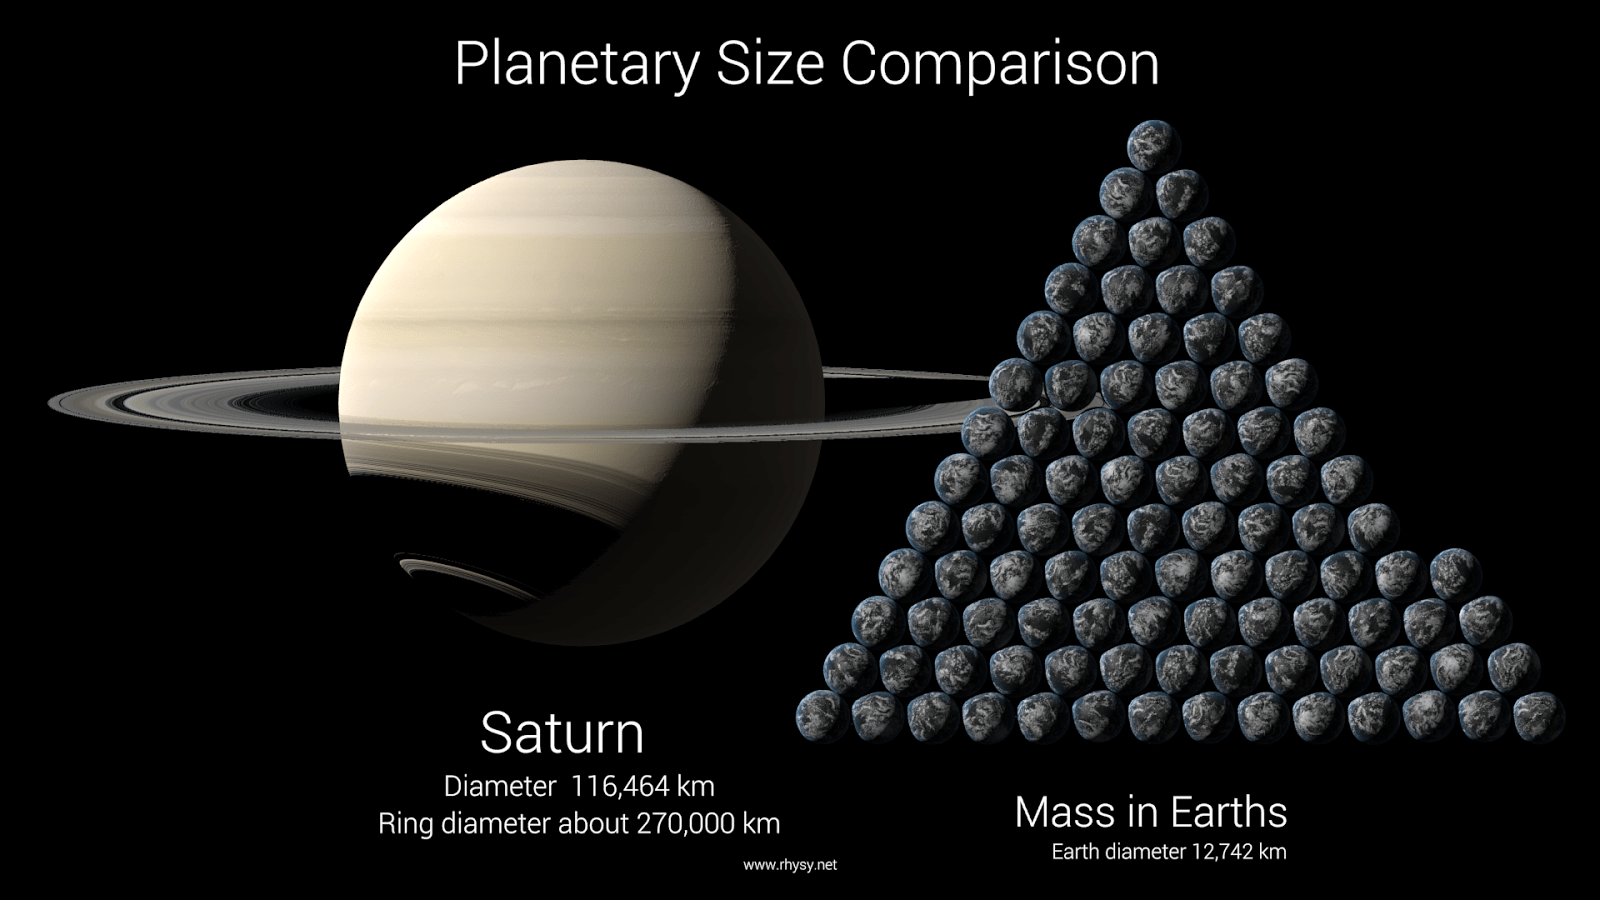 earth compared to saturn - photo #4